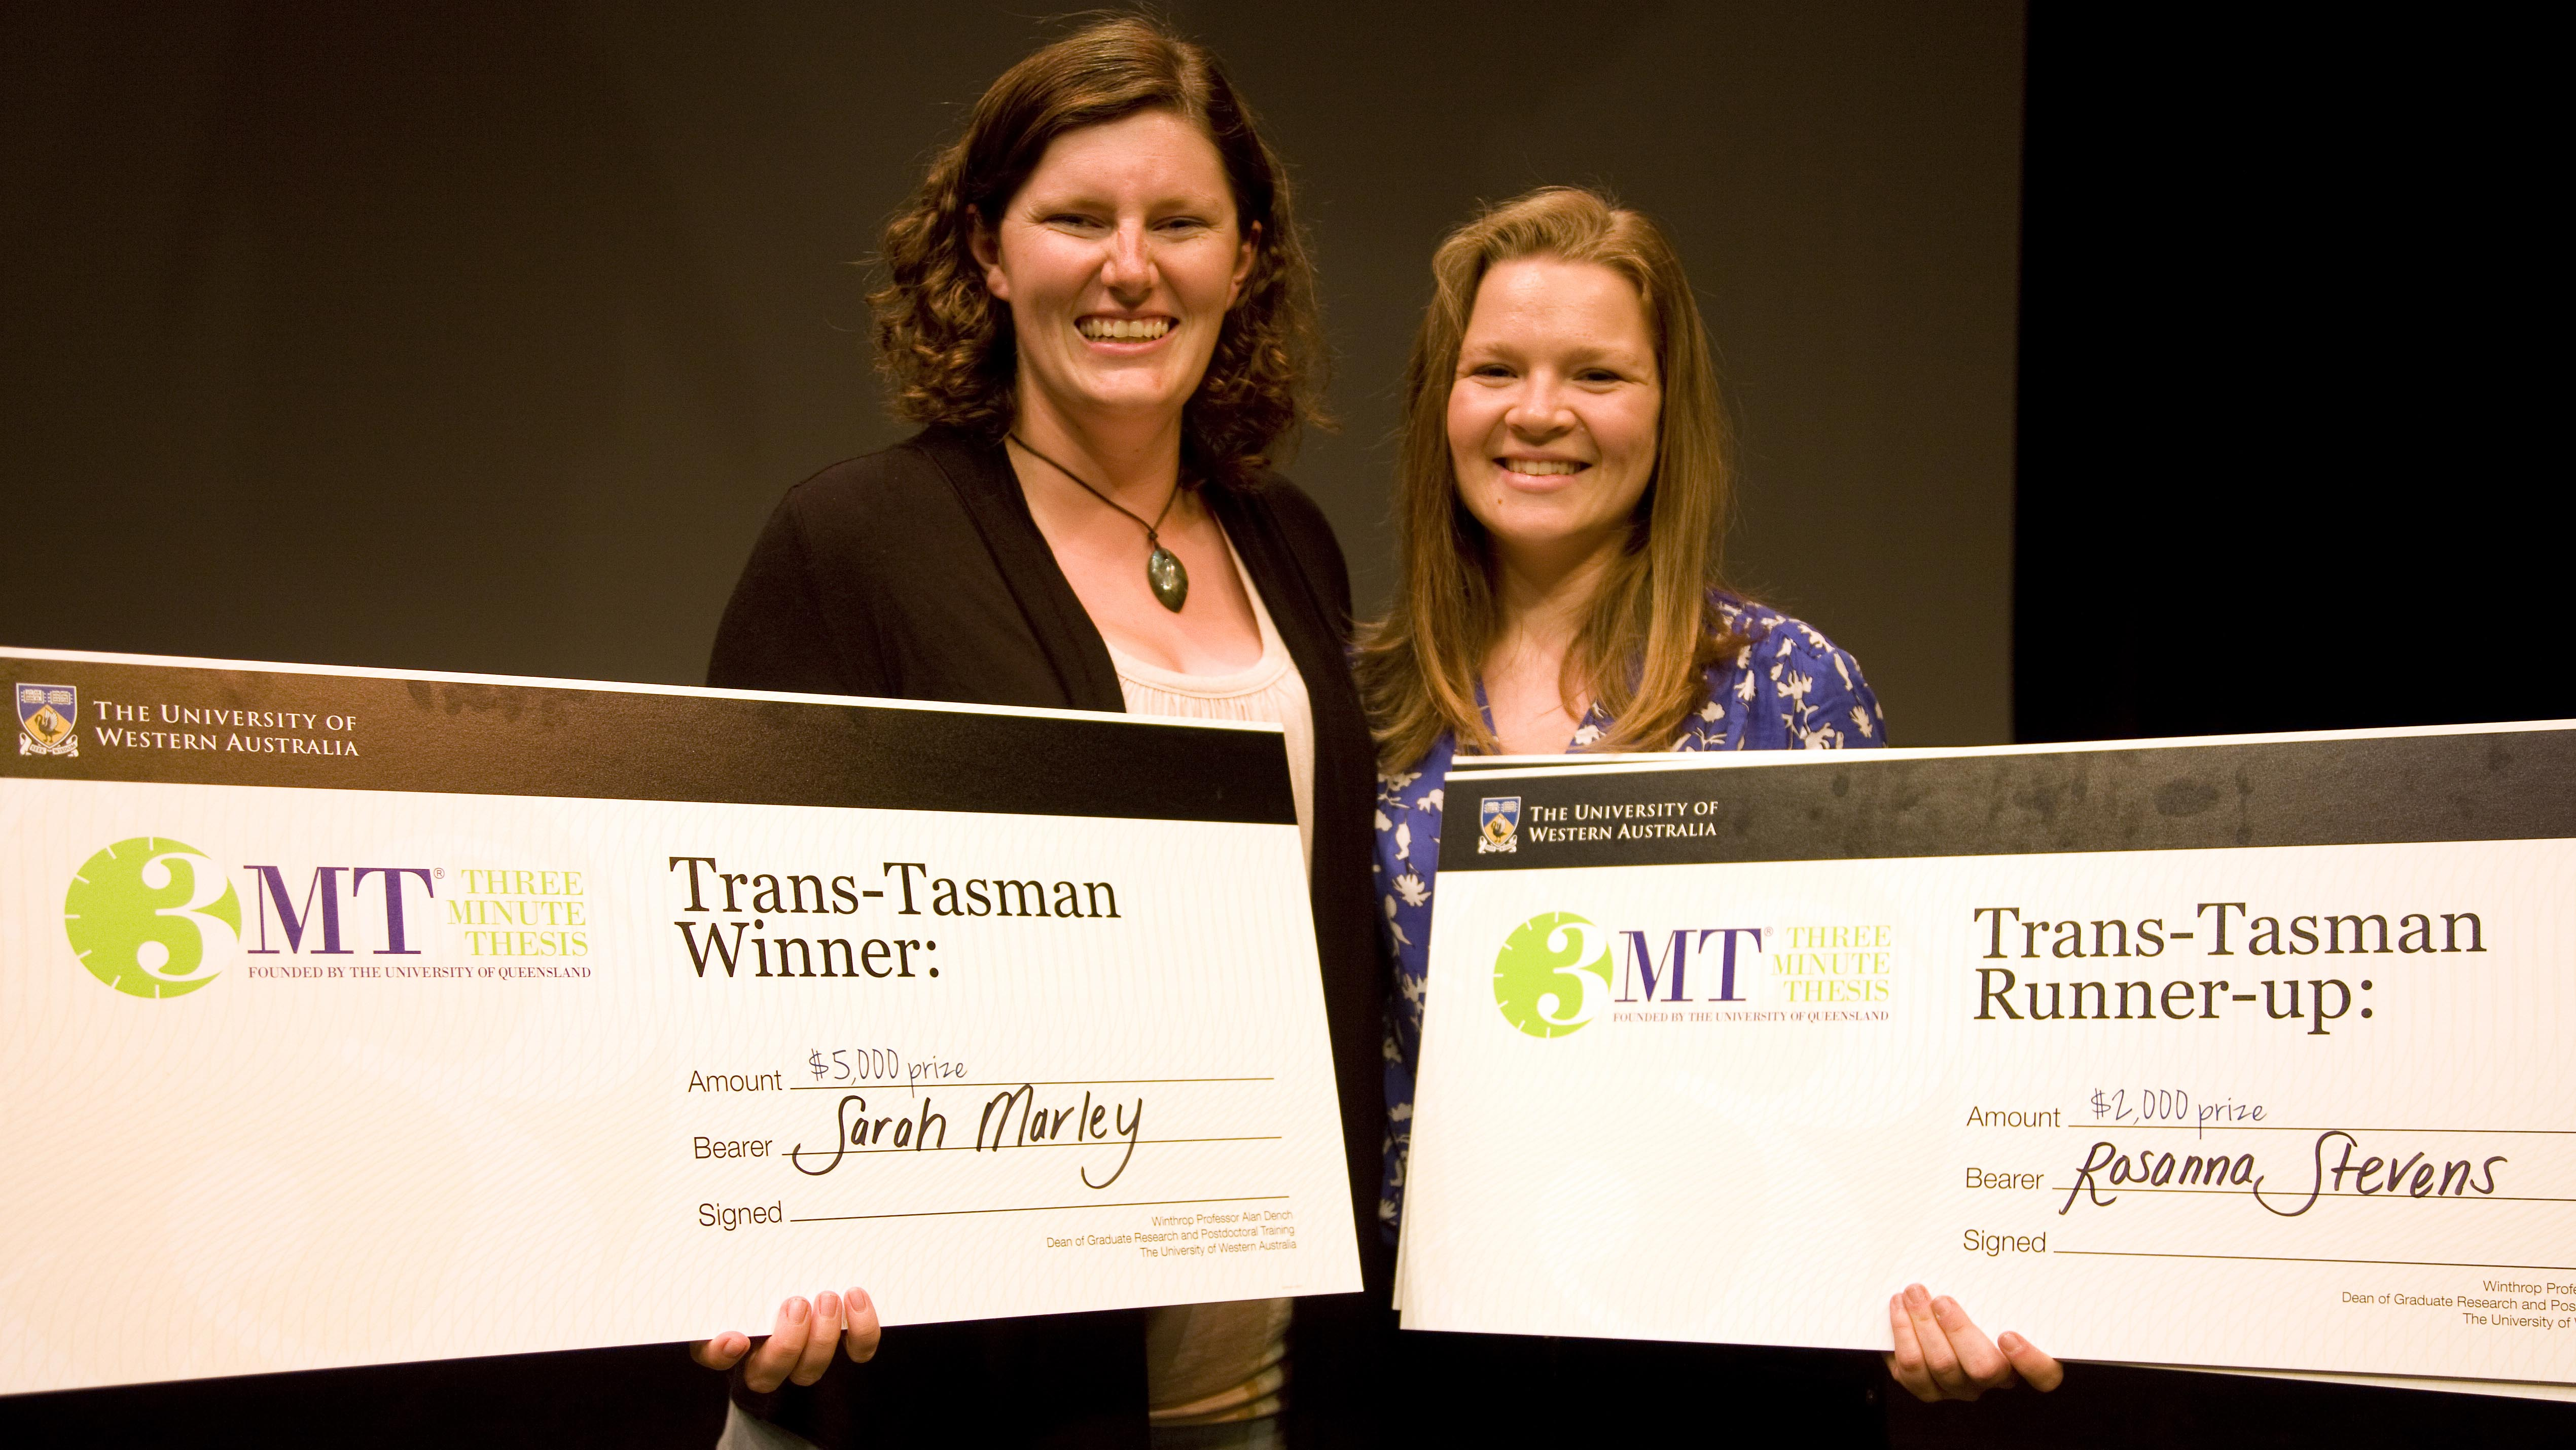 3 minute thesis winner 3 minute thesis (3mt®) is an academic competition developed by the university of queensland (uq), australia the university of leicester is hosting its.